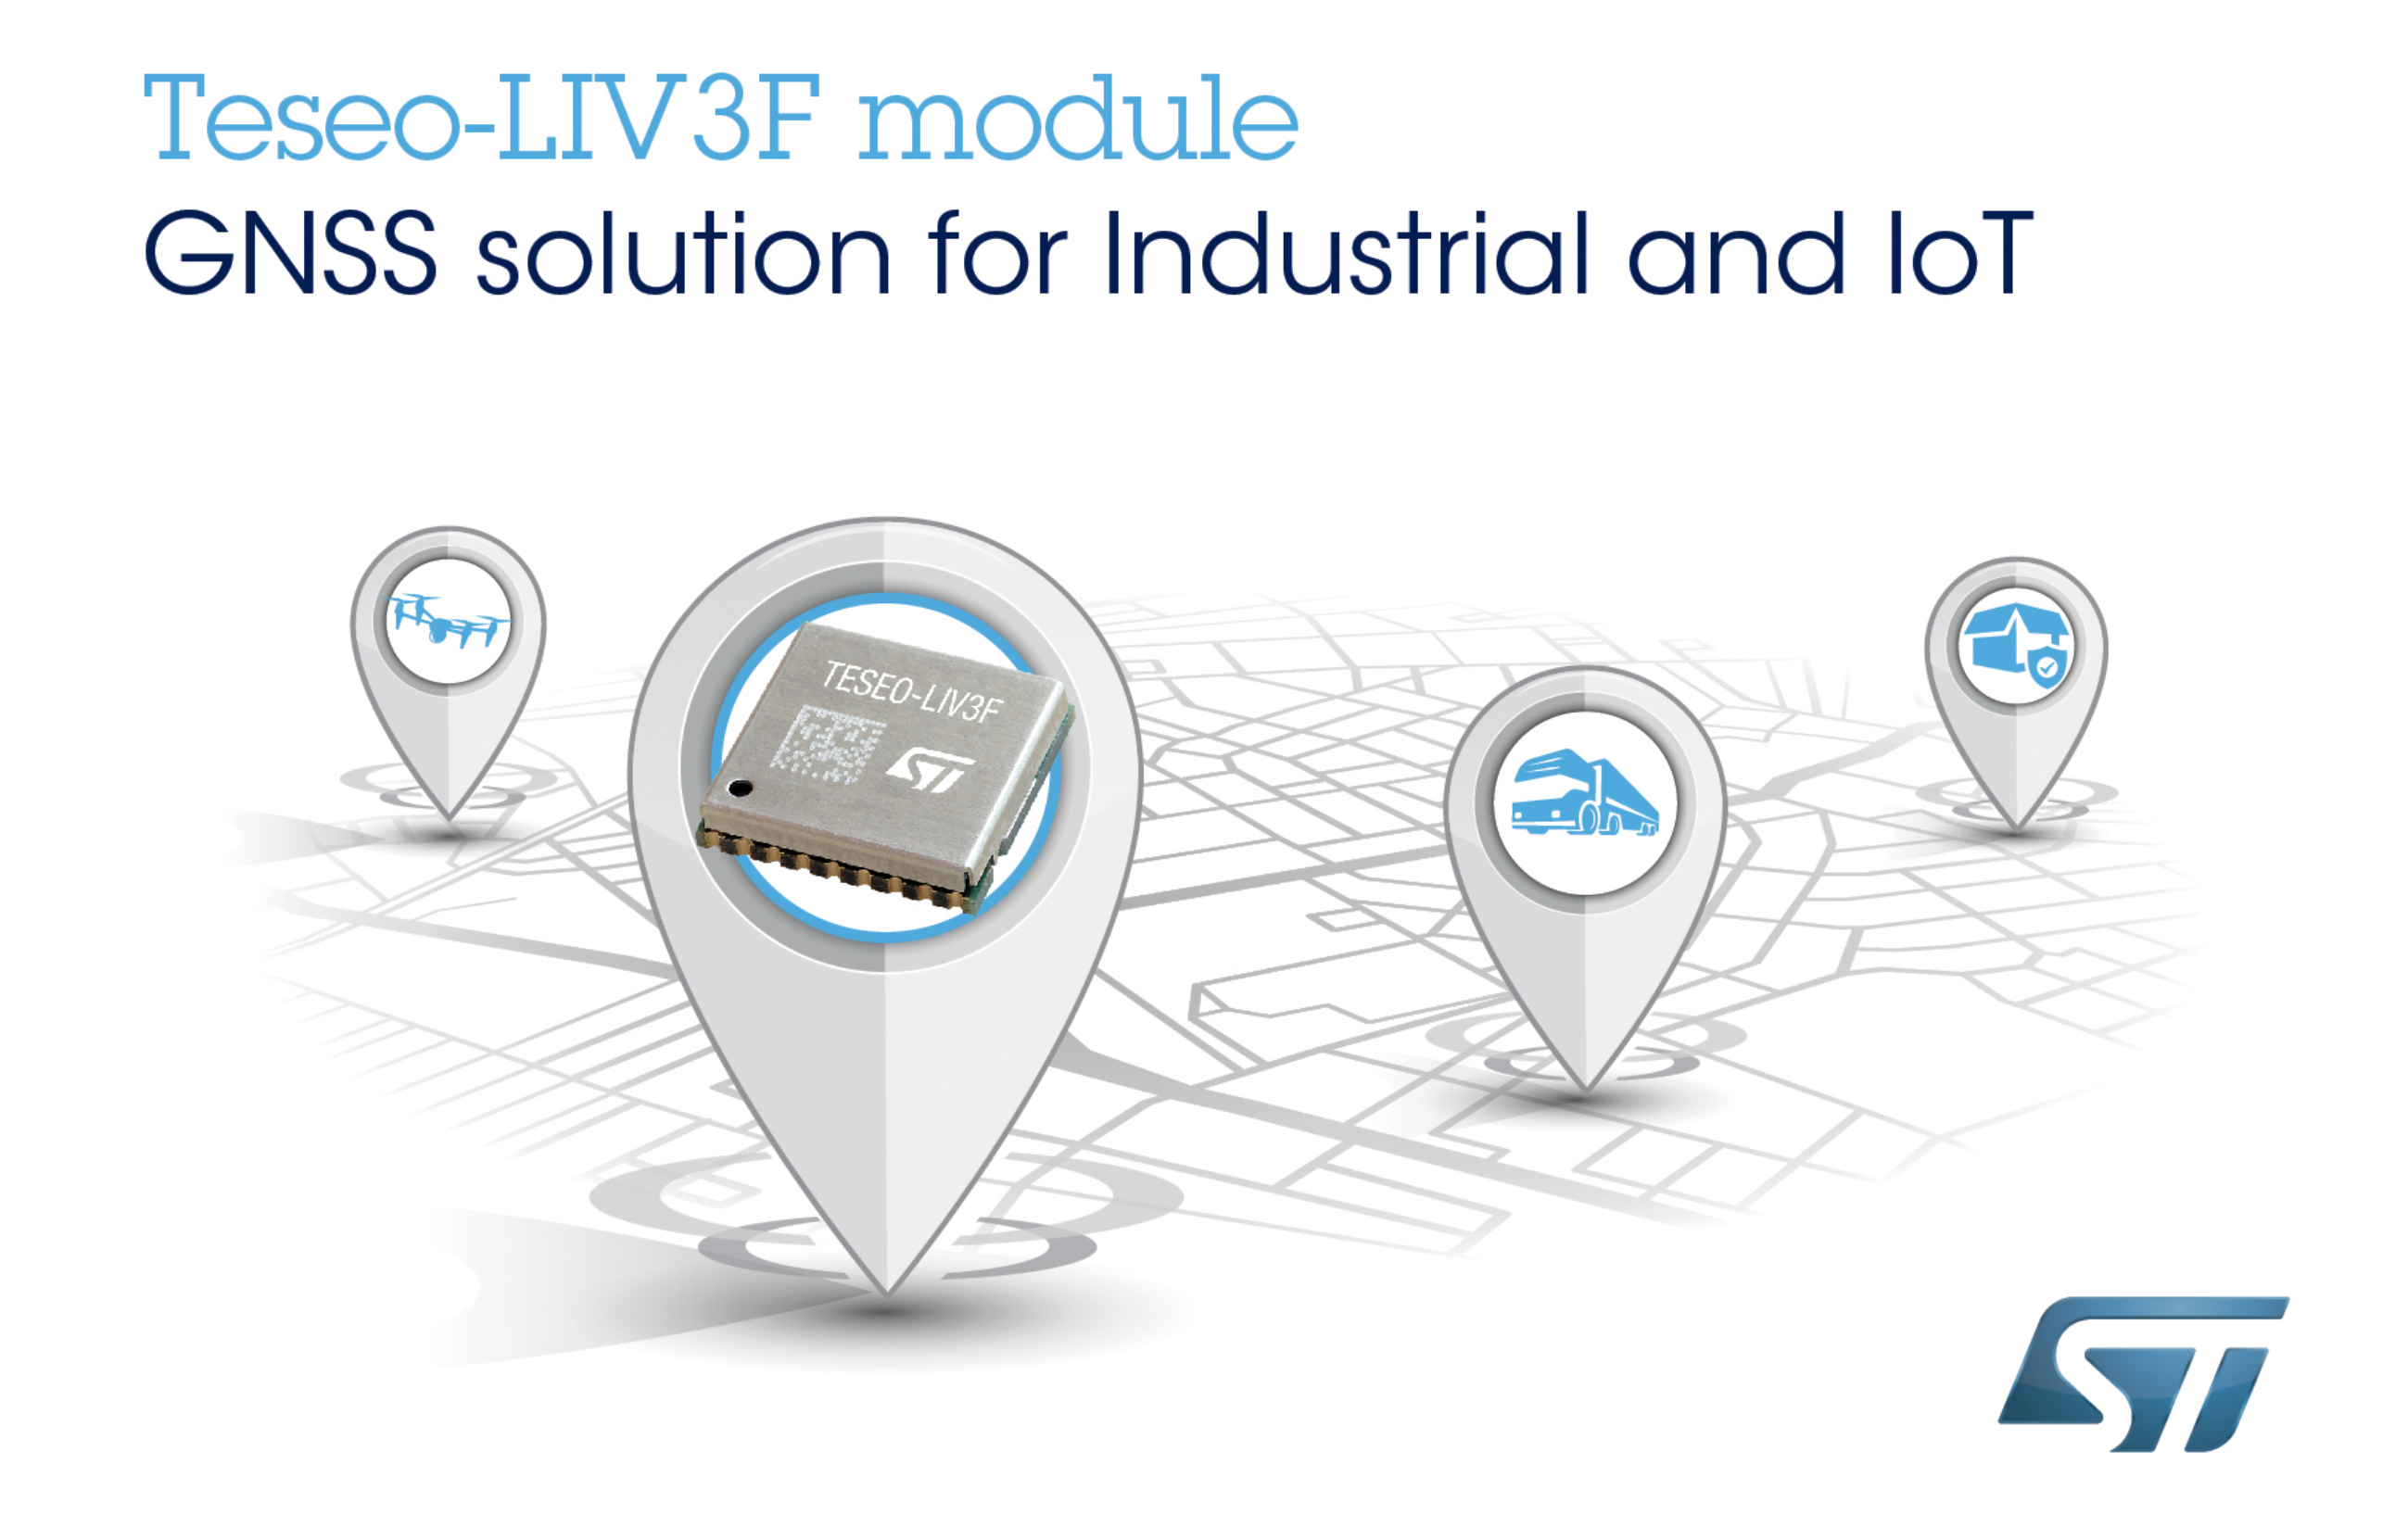 STMicroelectronics' GNSS Module Leverages Teseo III Chip